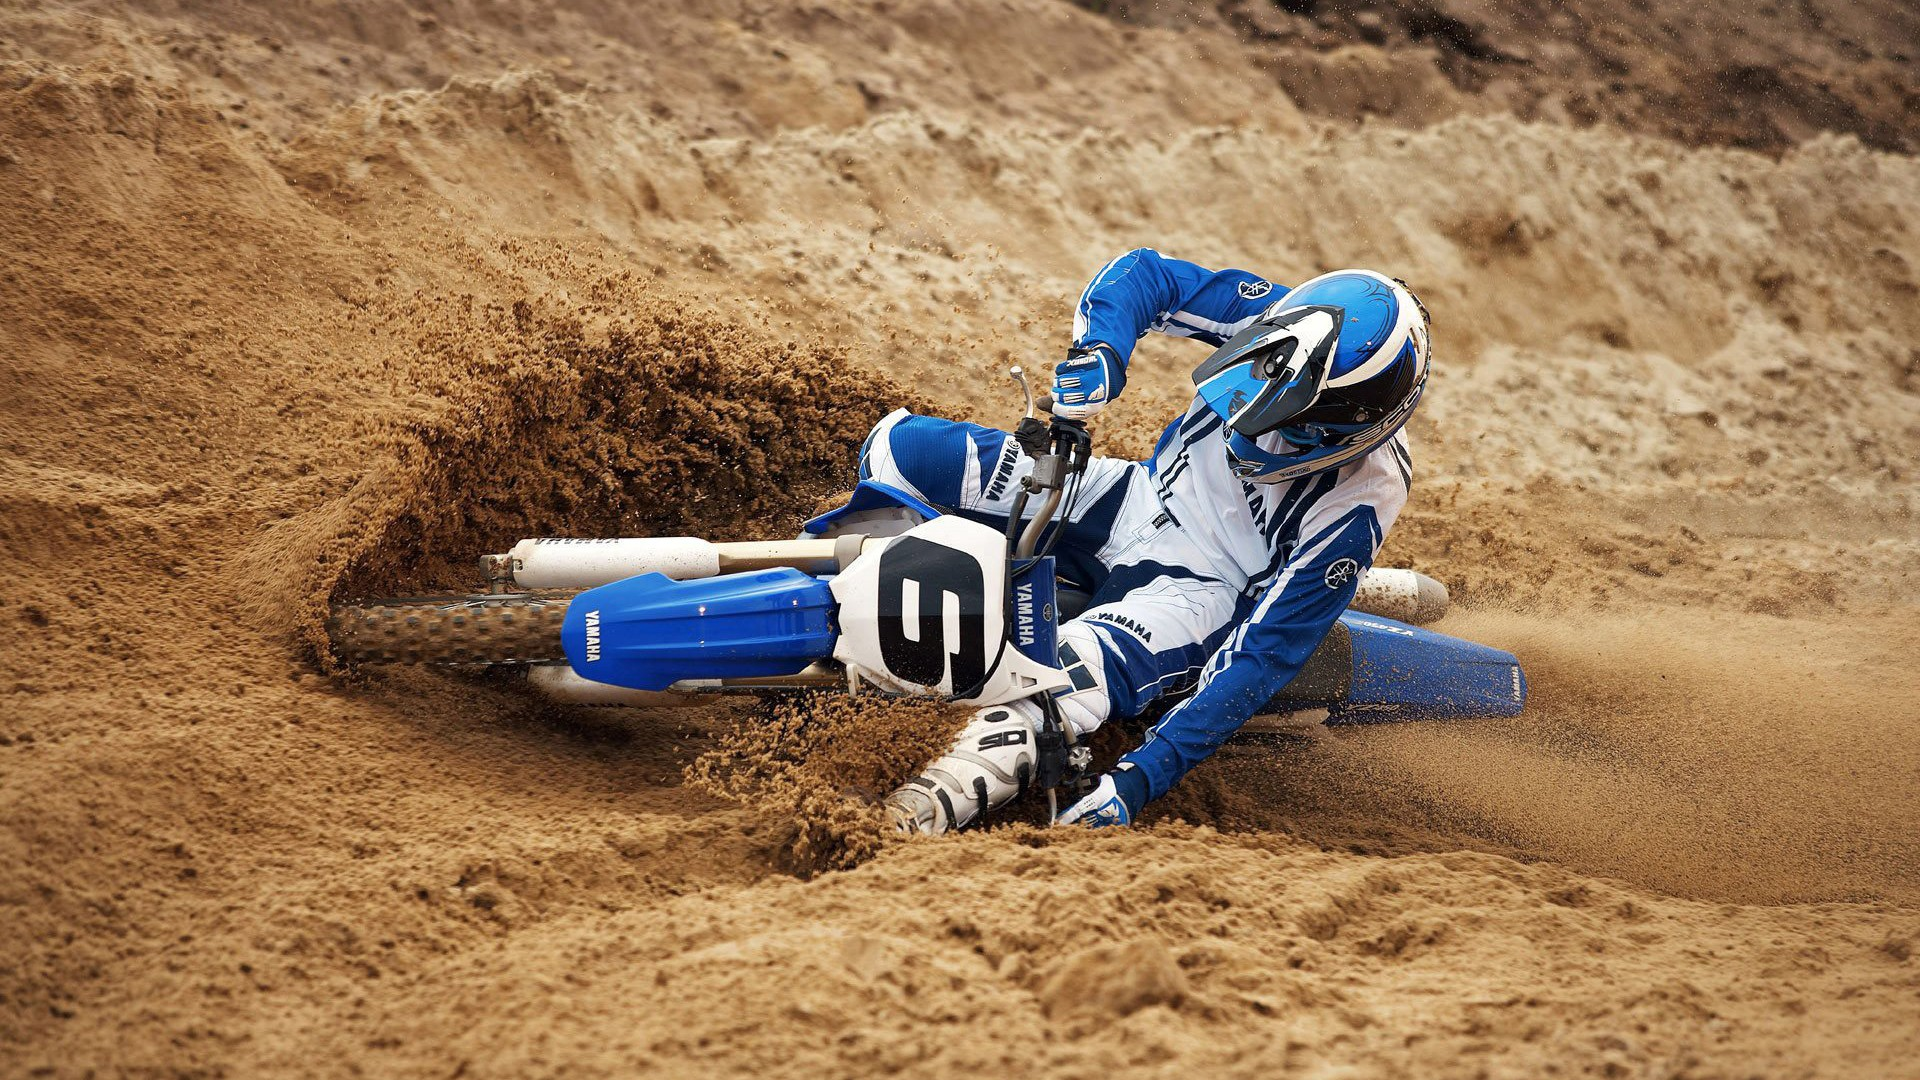 yamaha dirt bike wallpaper hd 48688